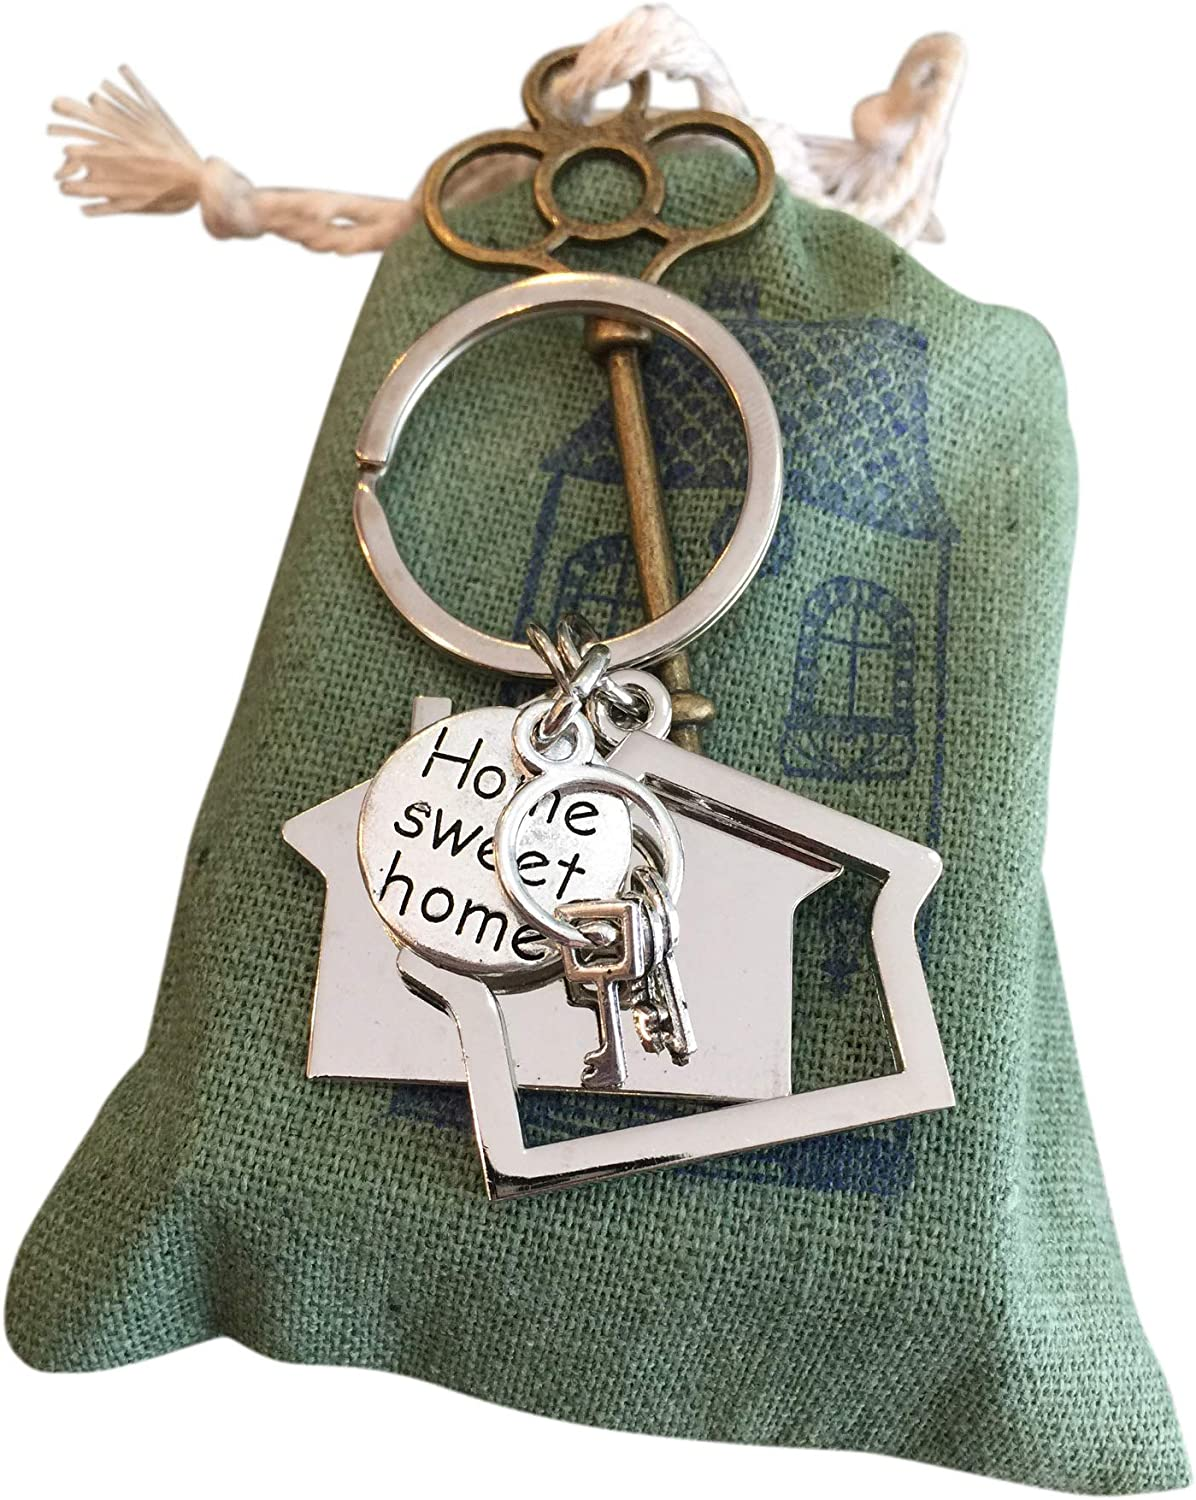 New Home Keychain Gift for New Home Owner Gift for Buying New Home First Home Gift with Brass Key Tag